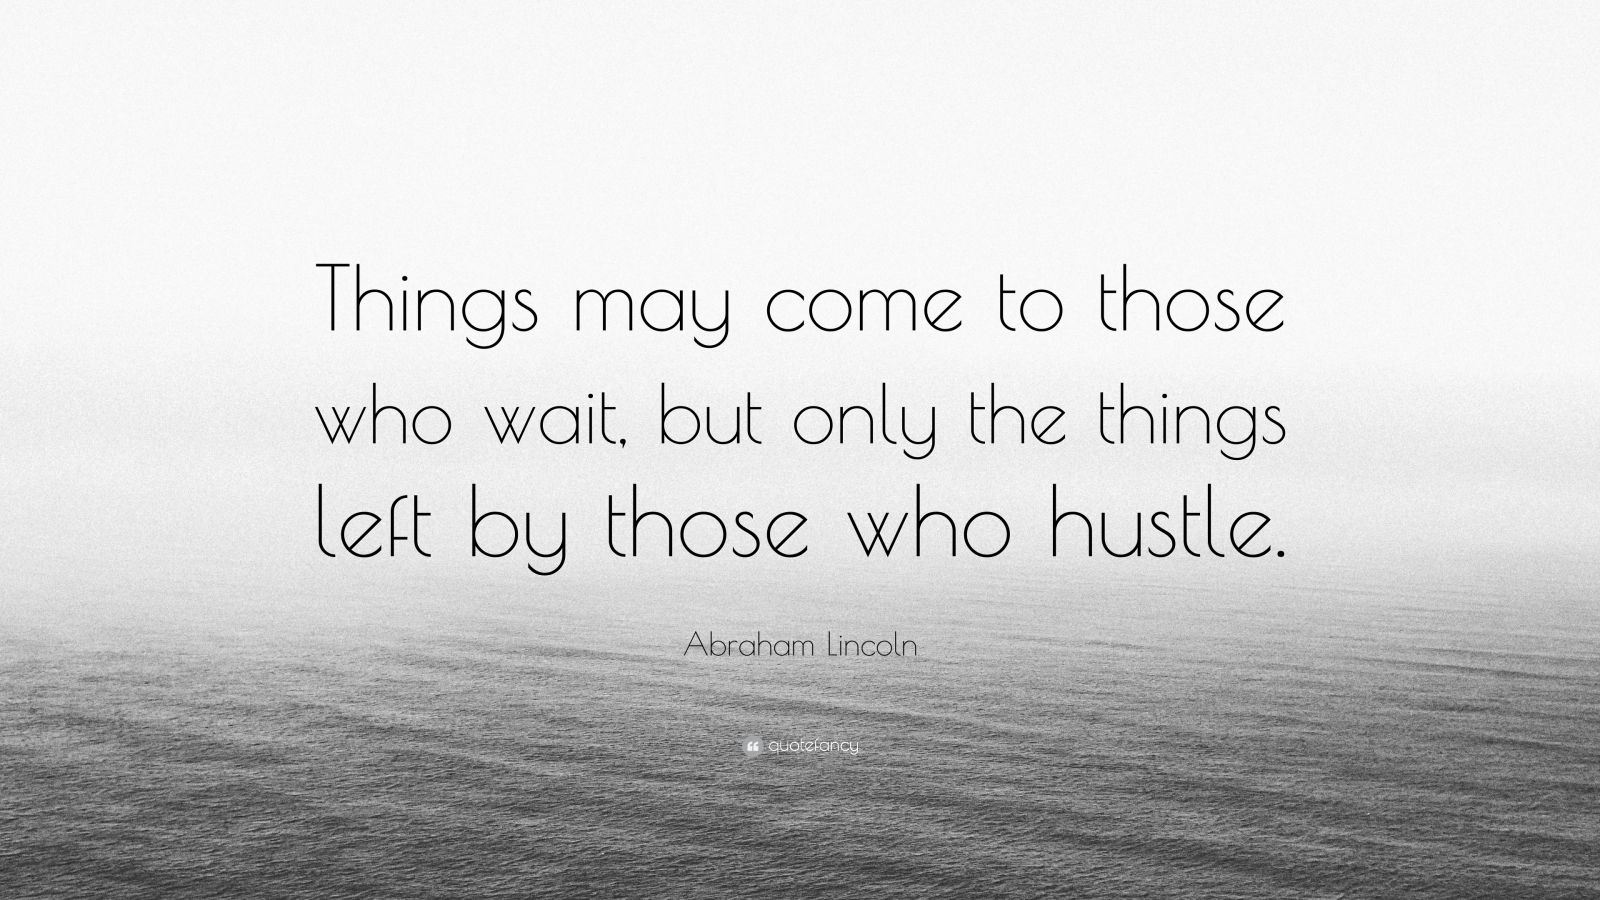 Hustle Quotes Wallpaper Abraham Lincoln Quote Things May Come To Those Who Wait